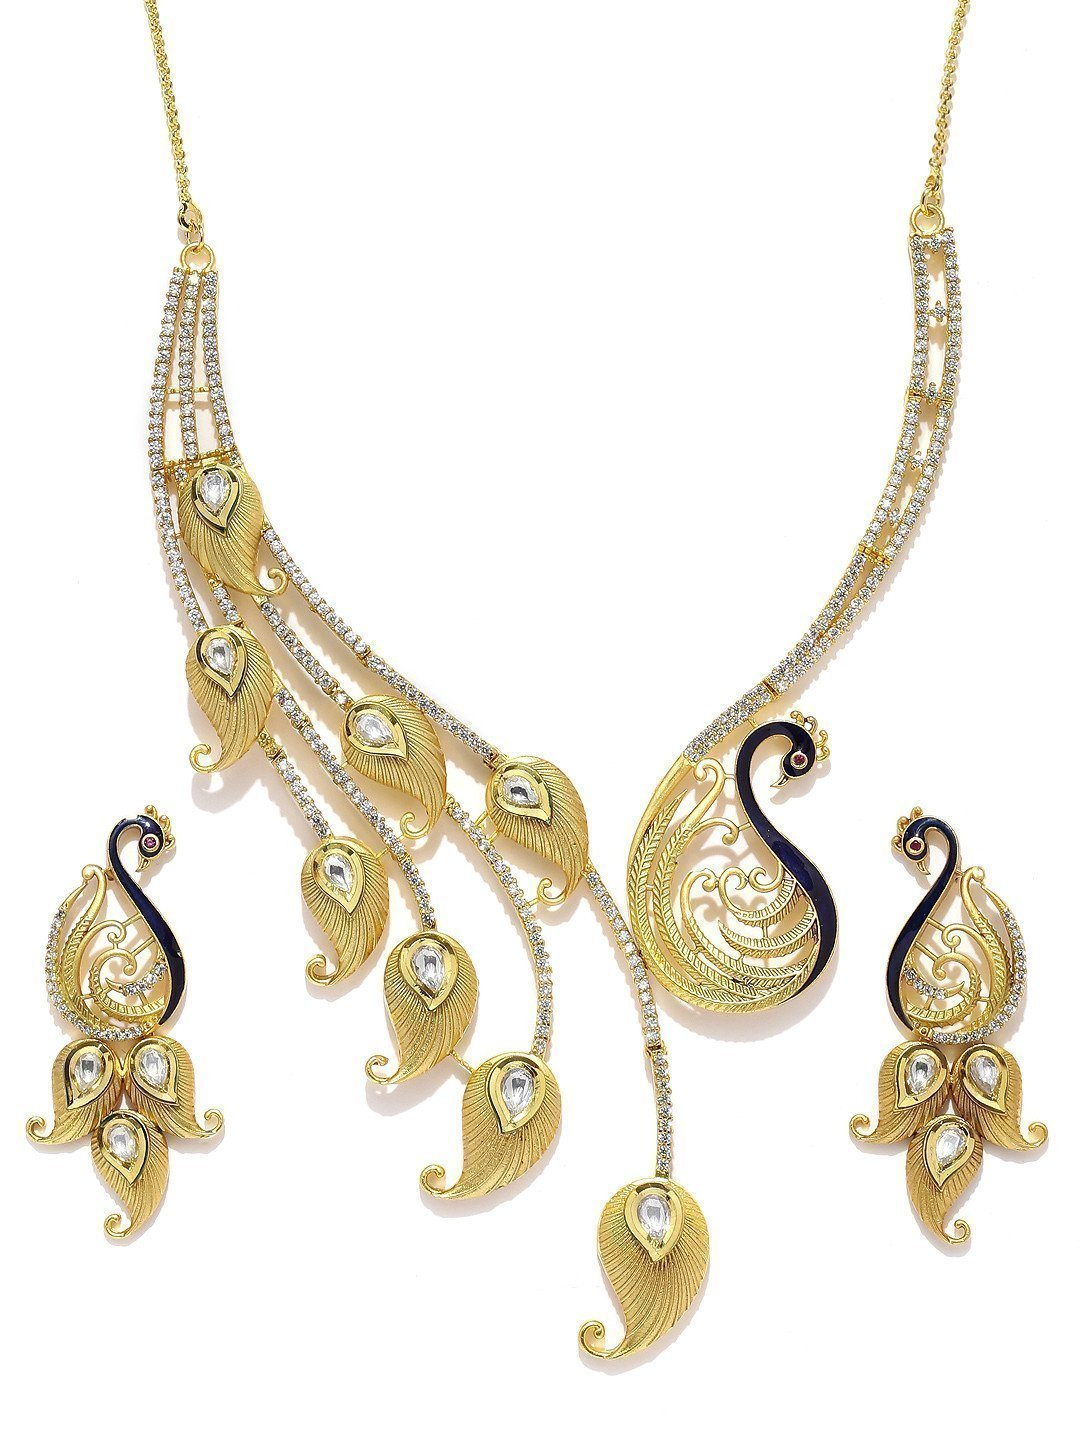 Designer Peacock Kundan & Cubic Zirconia Necklace Set - Zpfk5832